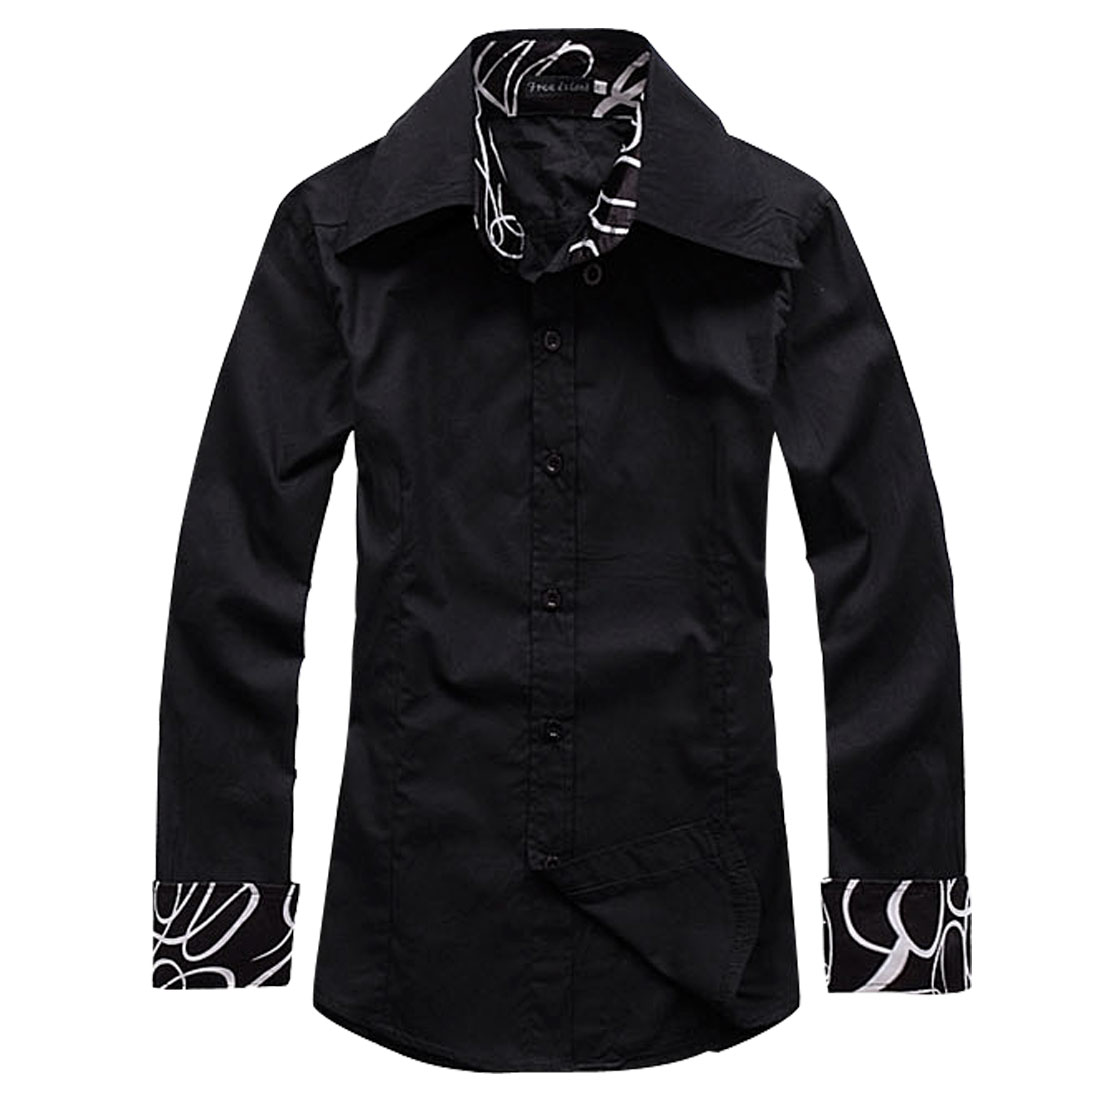 Mens Casual Fashion Black Single Breasted Trendy Spring Shirt Tops S